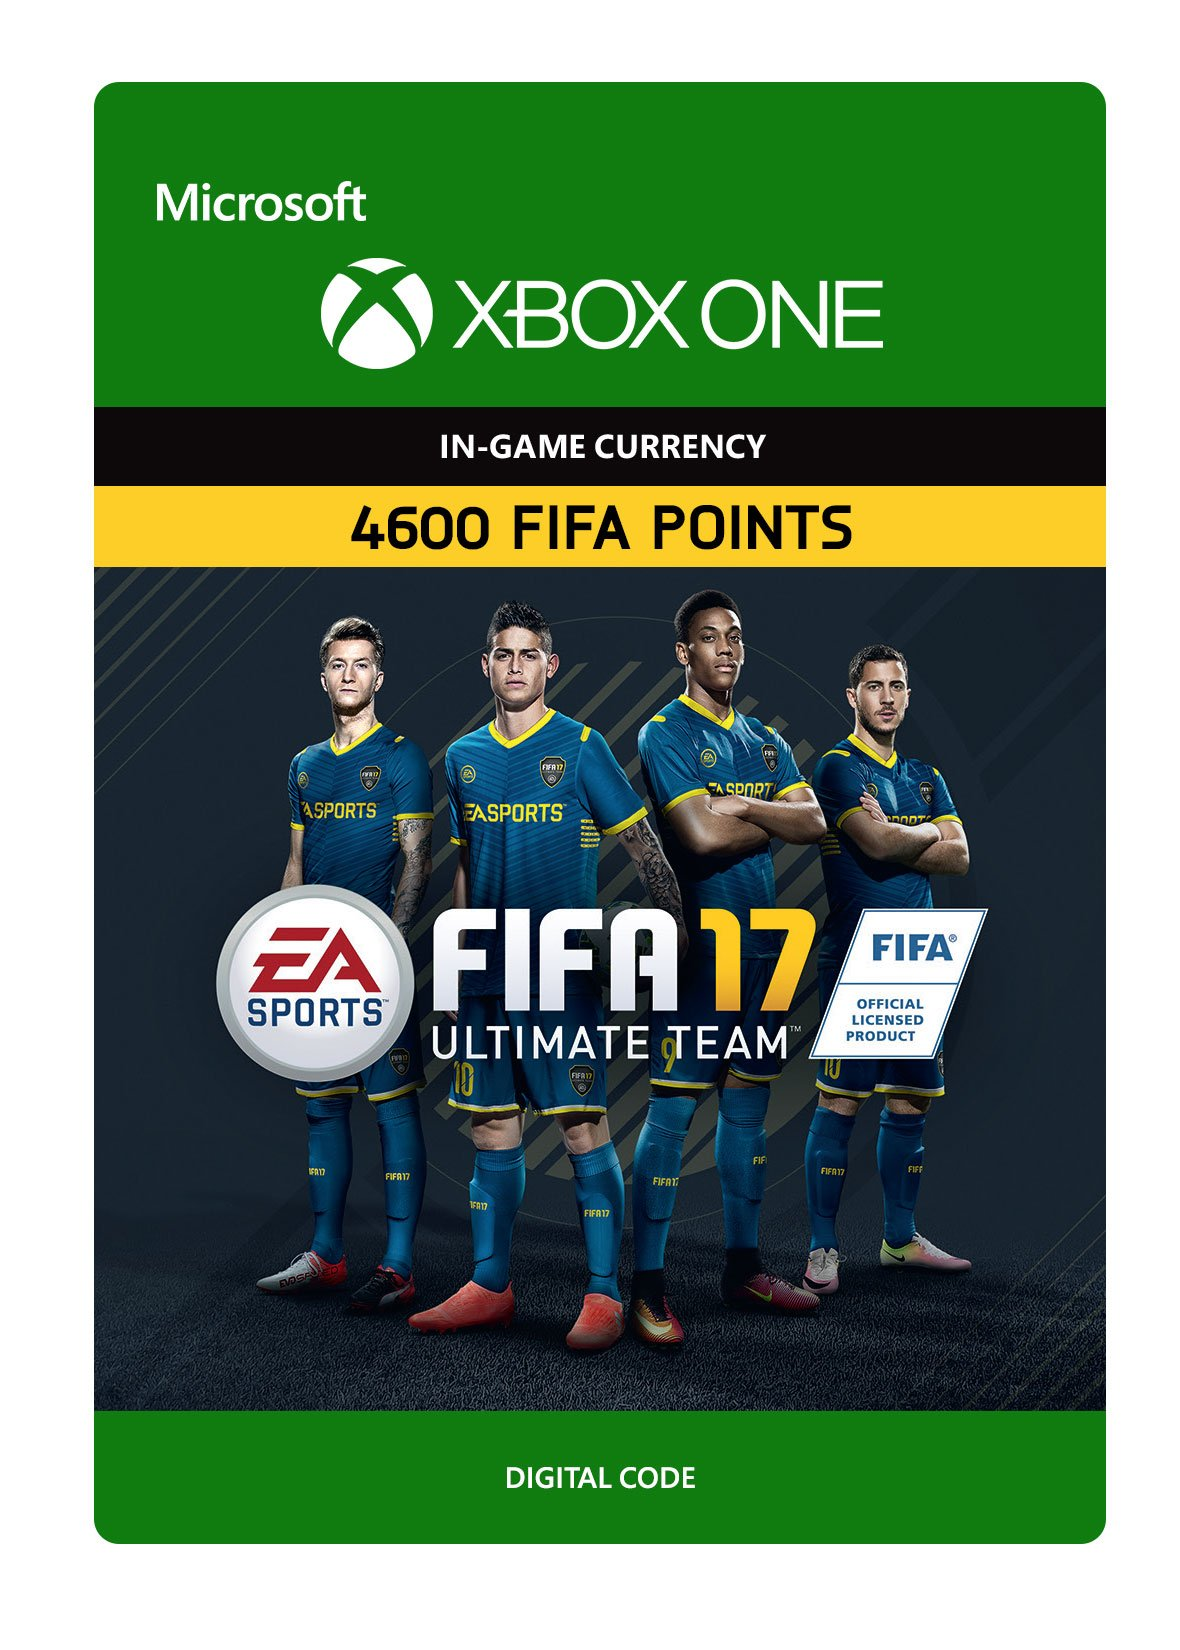 FIFA 17 Ultimate Team FIFA Points 4600 - Xbox One Digital Code